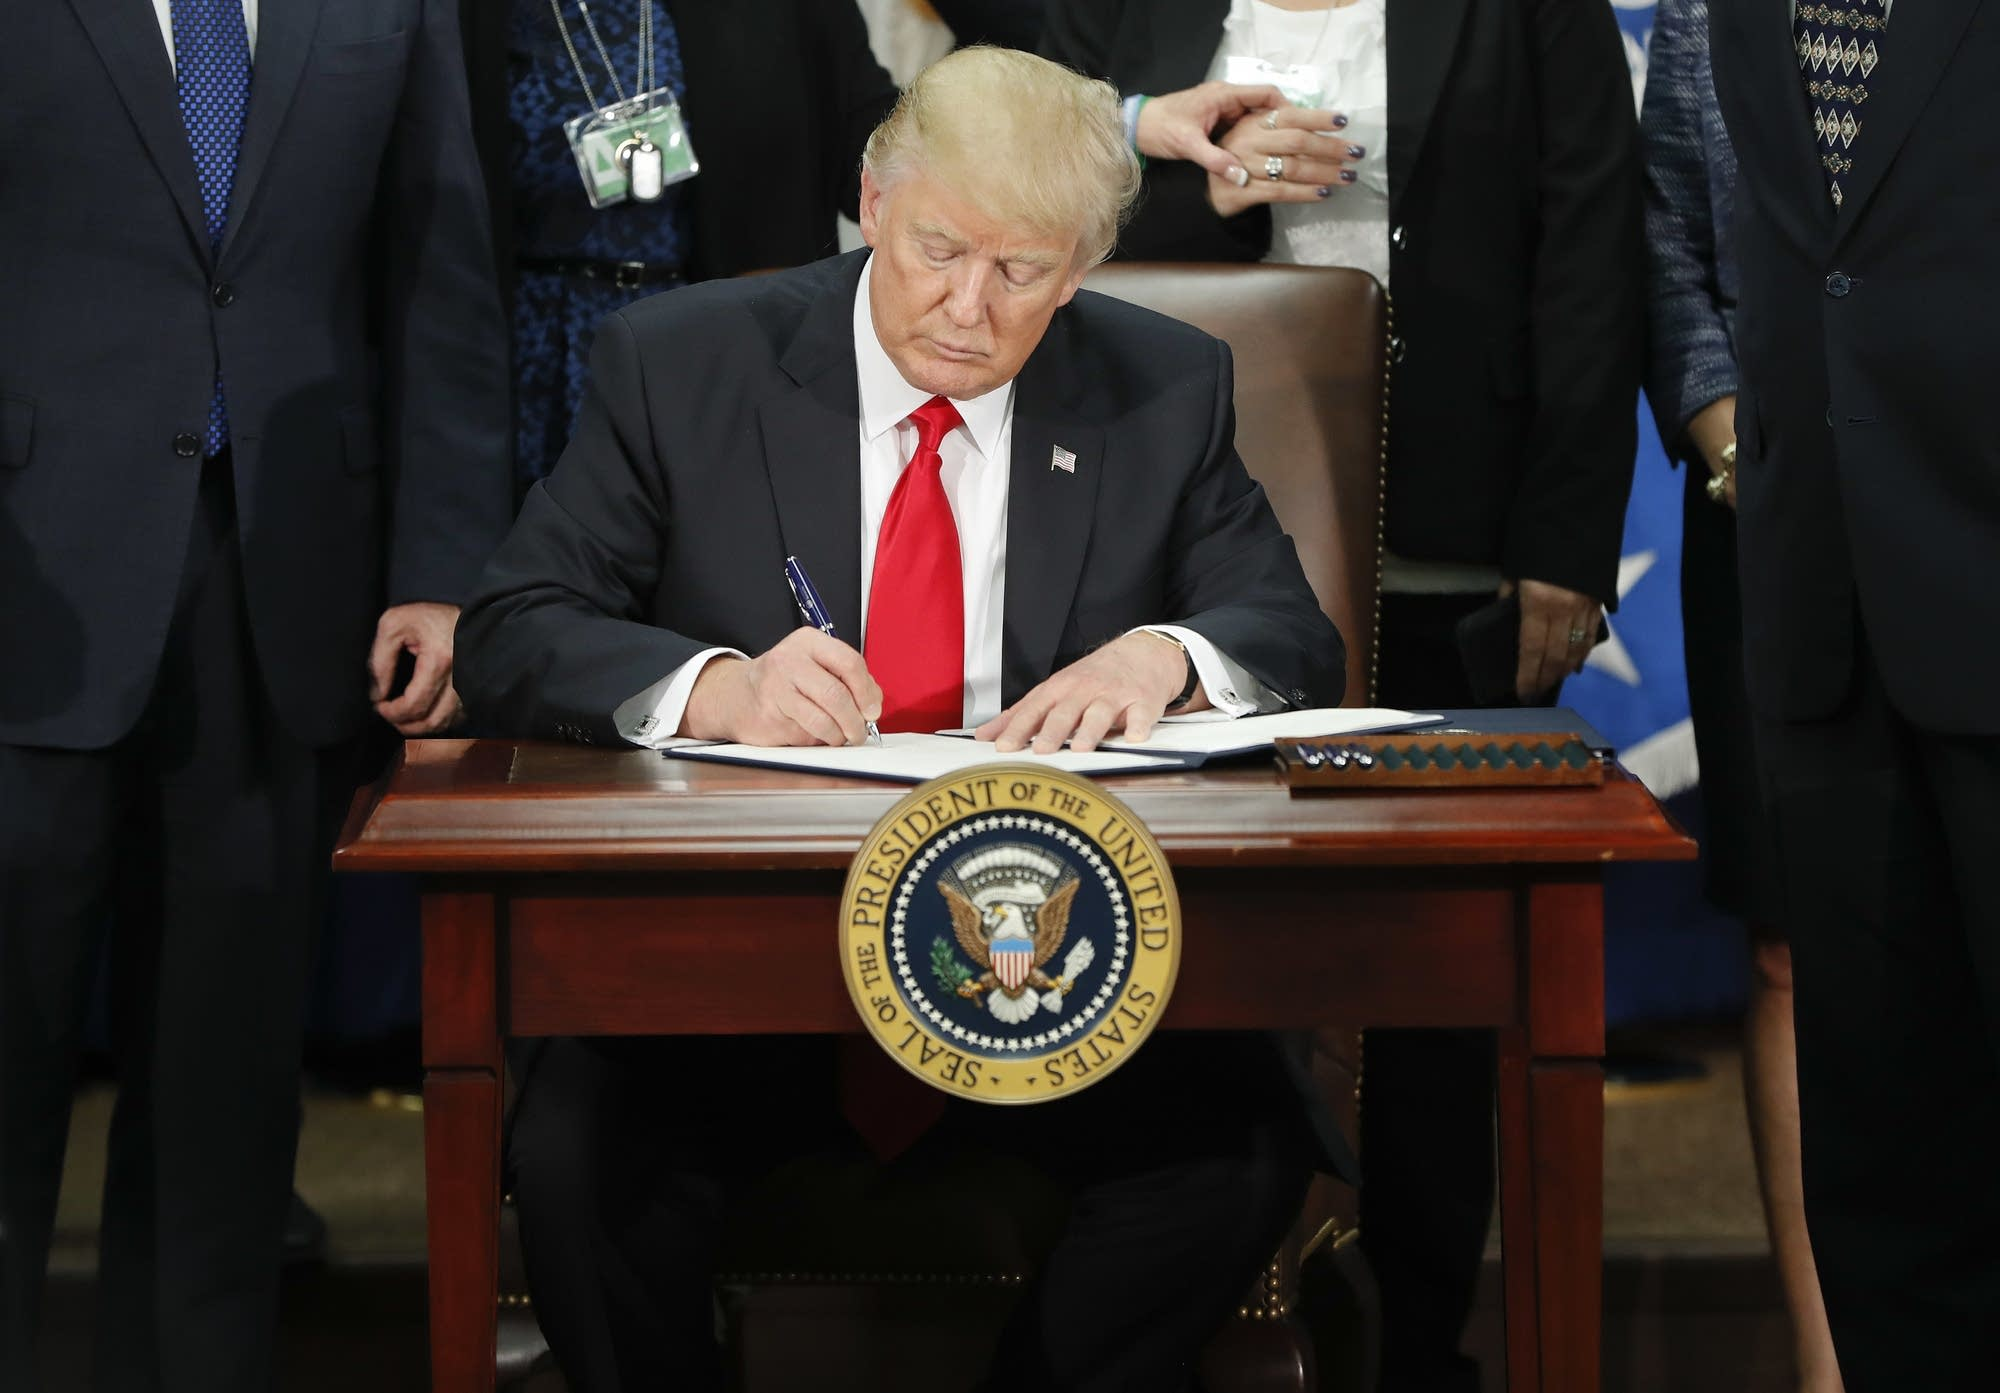 President Donald Trump signs an executive order